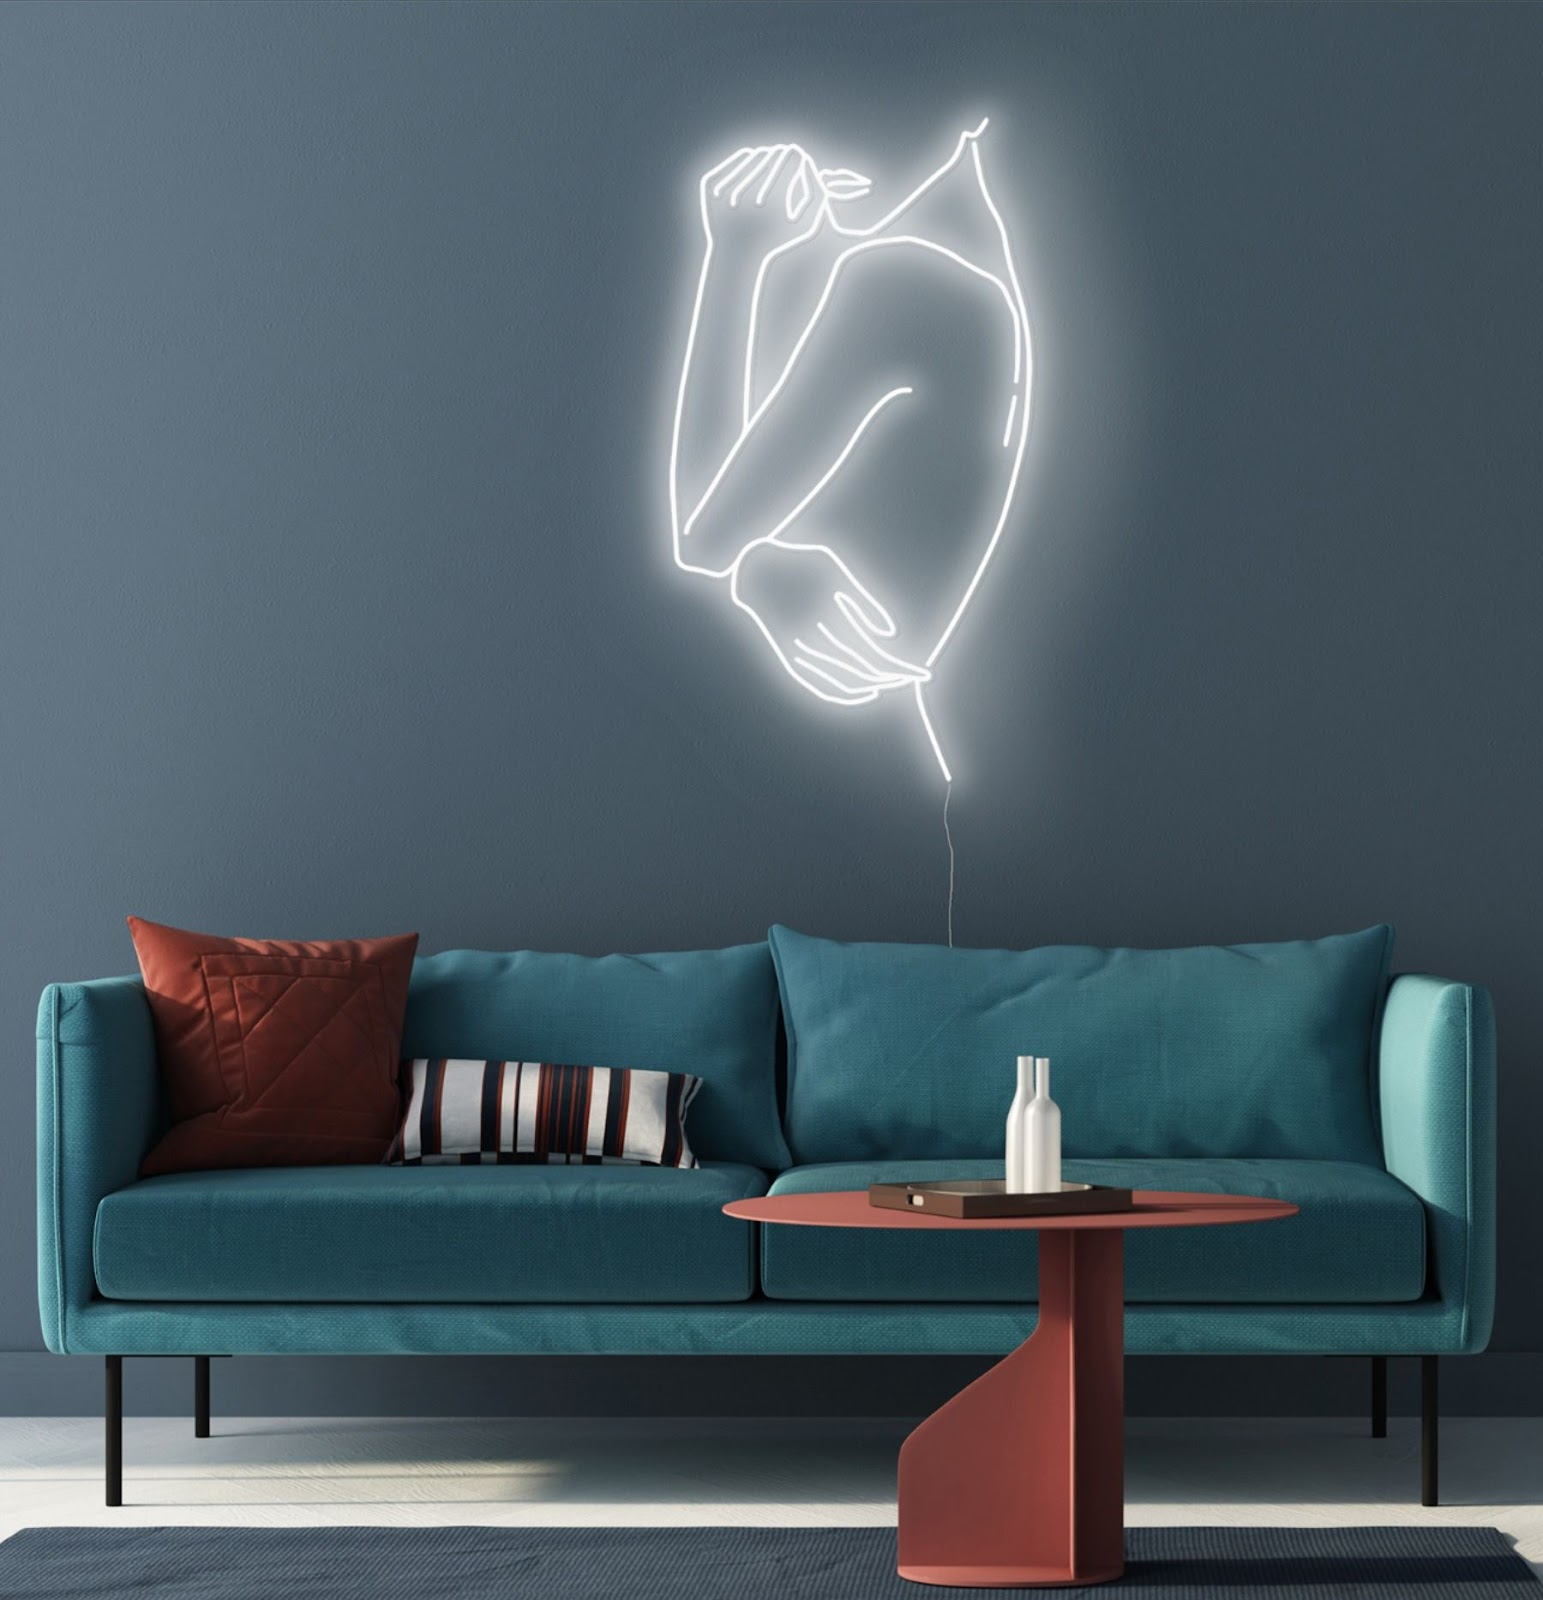 Glow in Neon Living Room Wall Decor